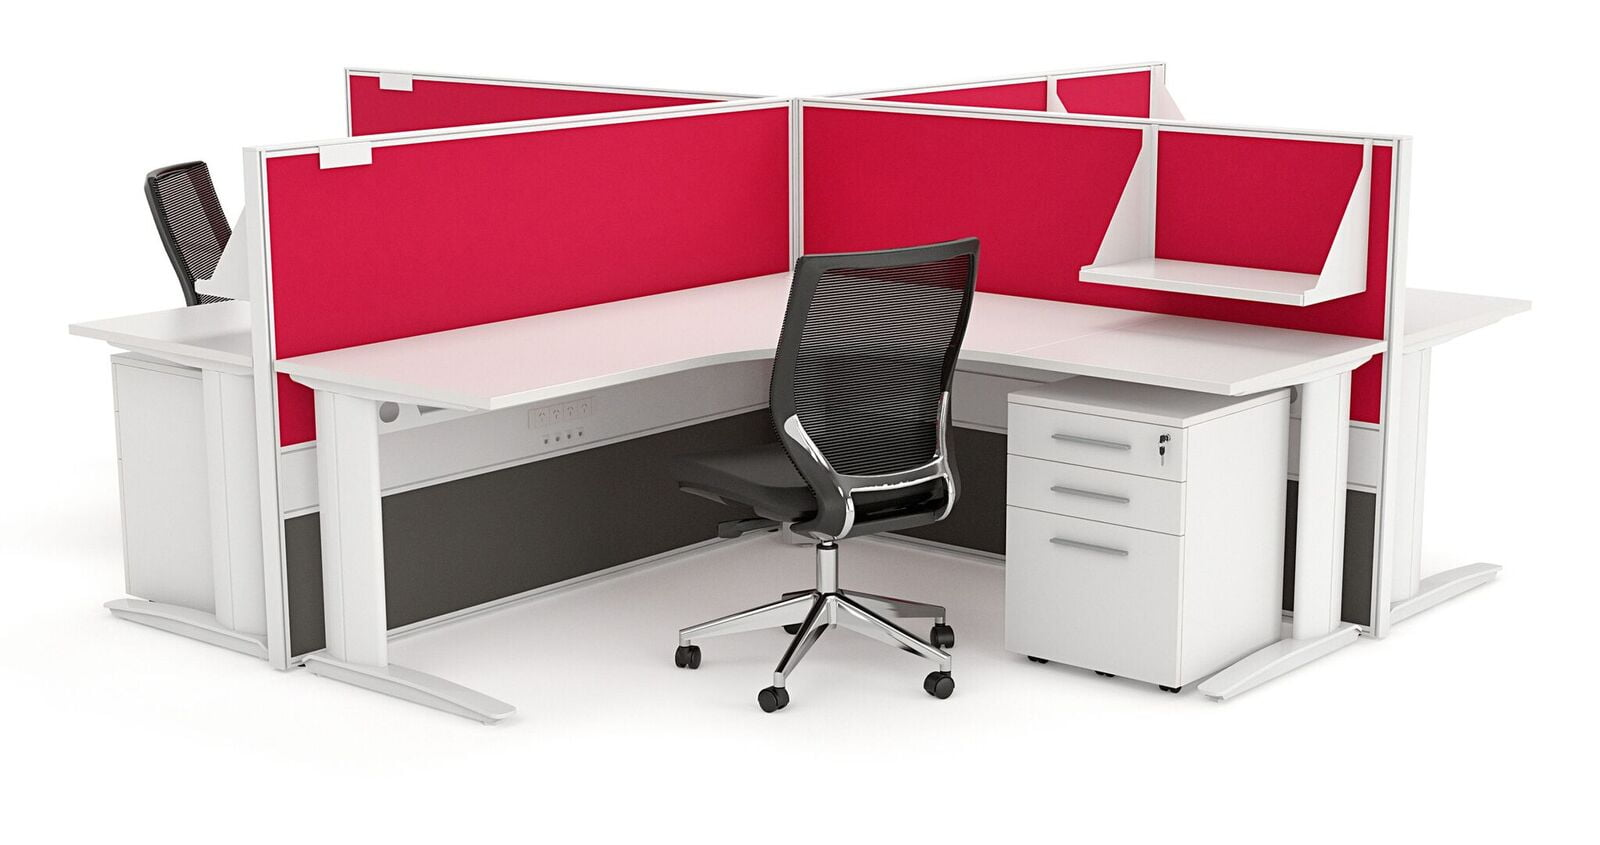 Studio 50 Partitions Office Furniture Plus Melbourne